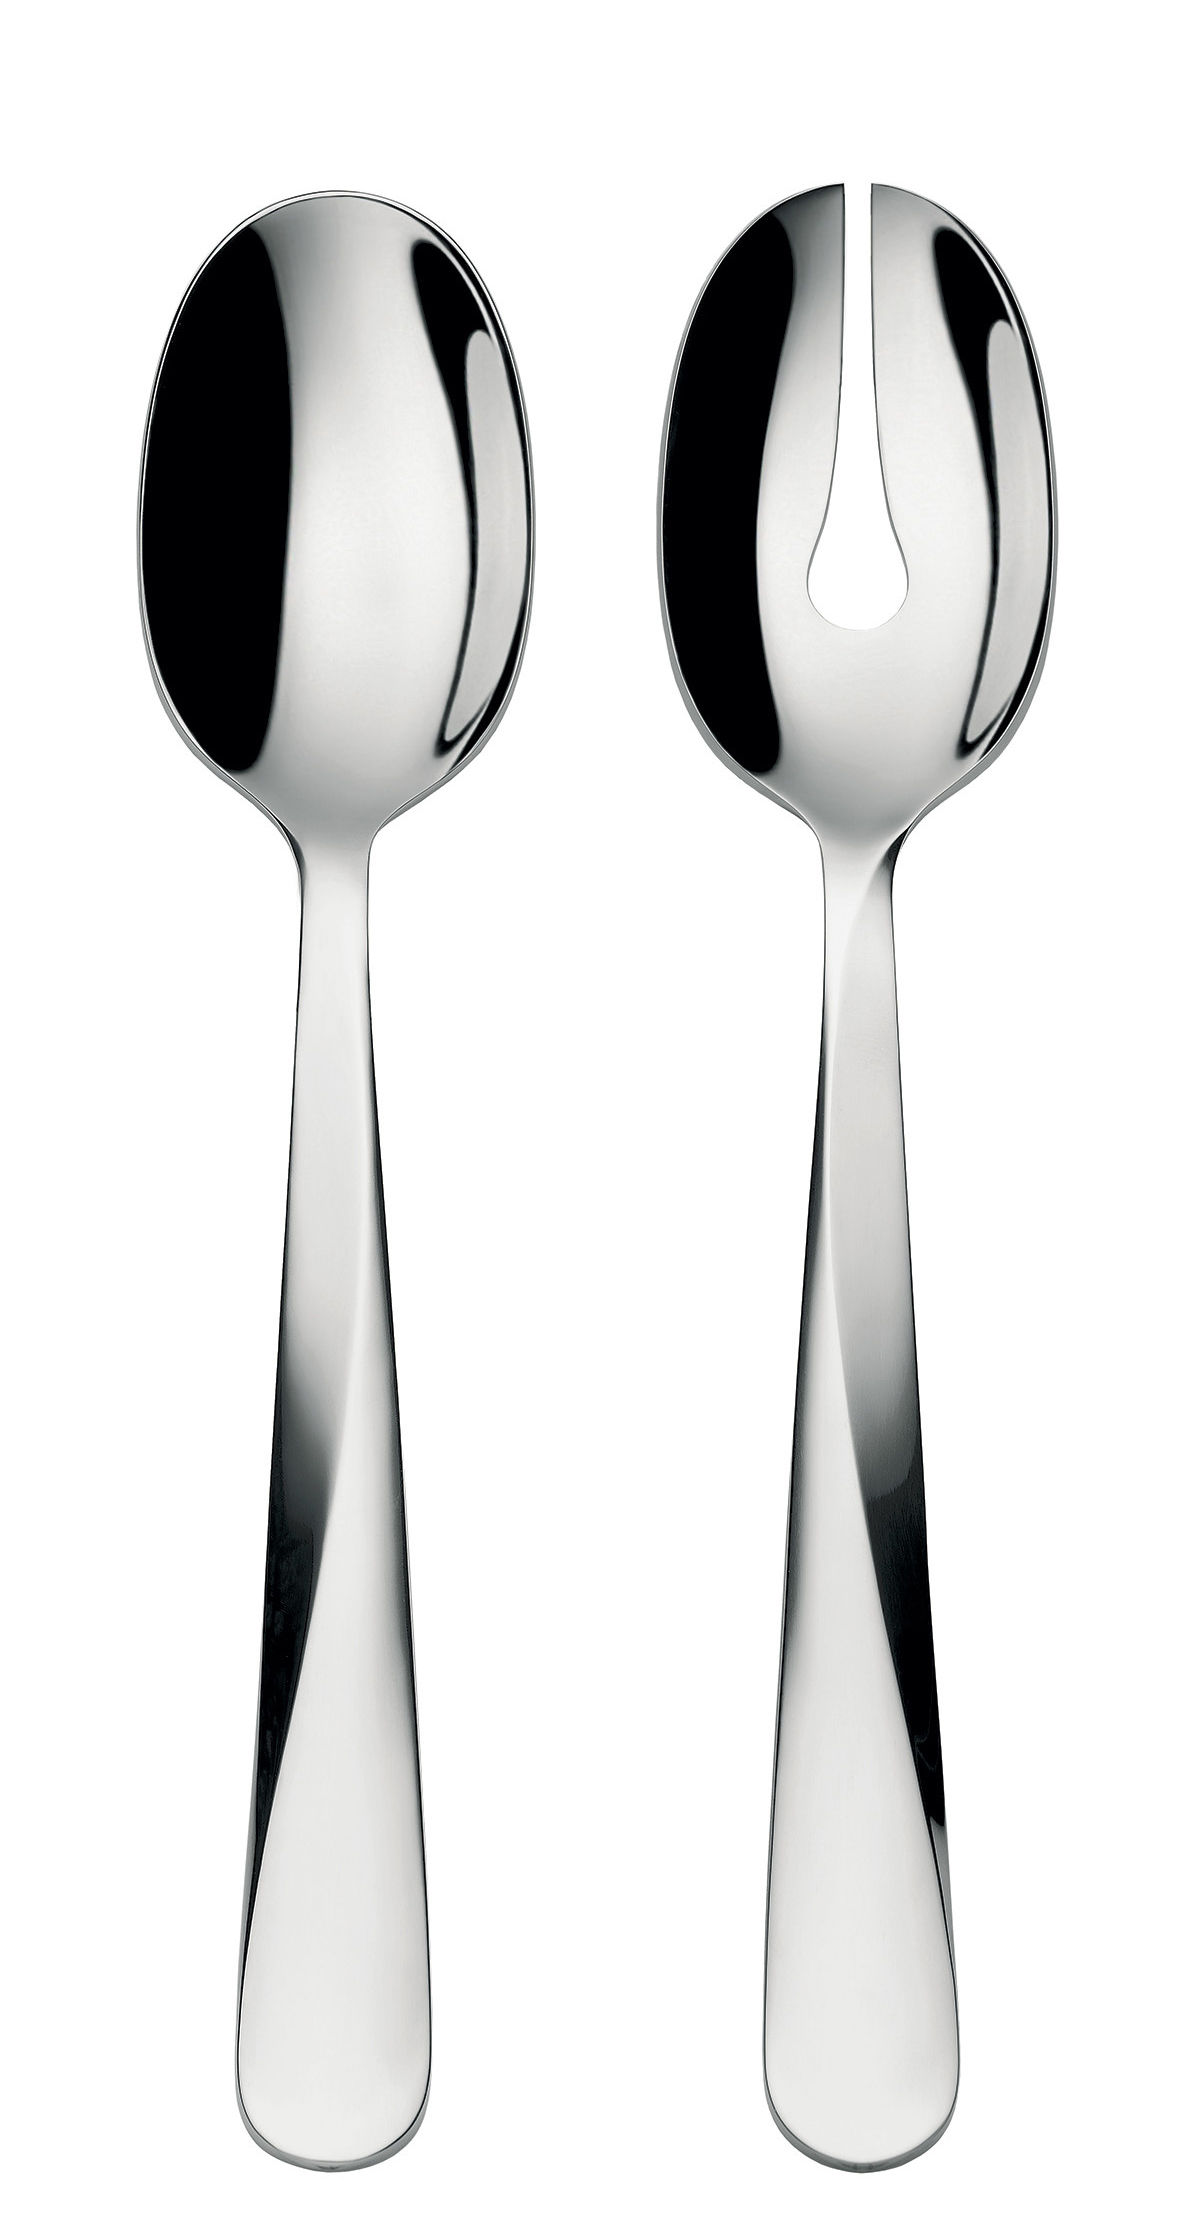 Tableware - Serving Cutlery - Giro Salad servers by Alessi - Steel - Stainless steel